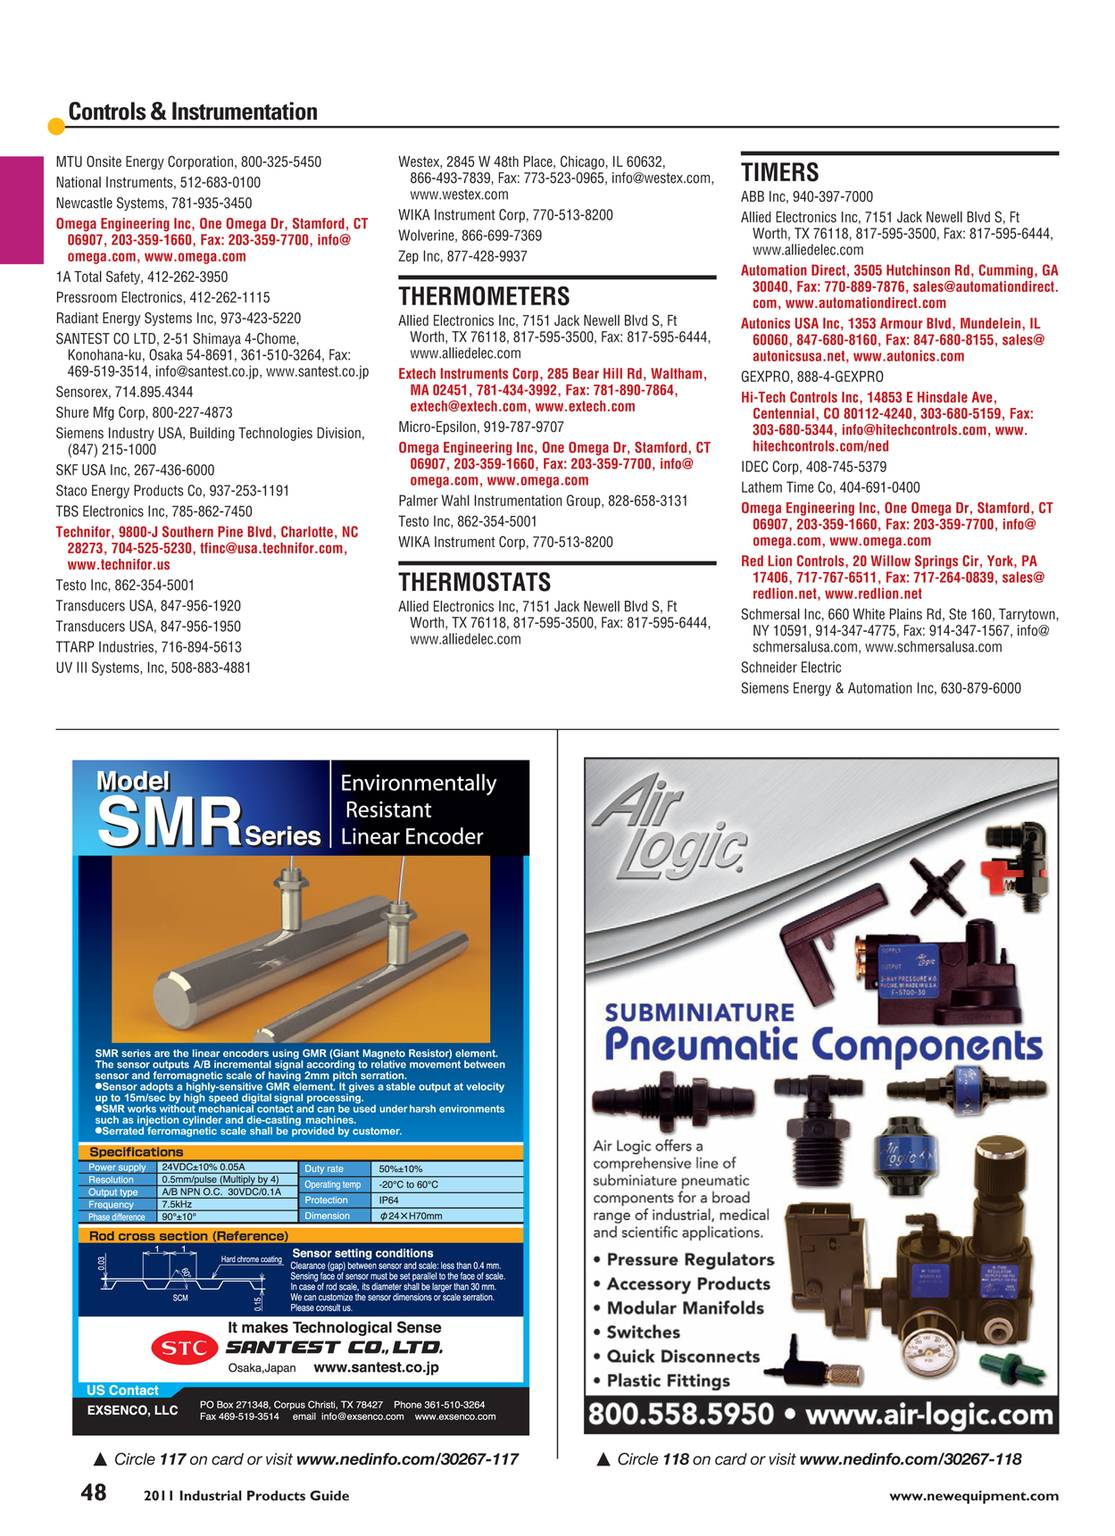 New Equipment Digest - Industrial Products Guide 2011 - page 49